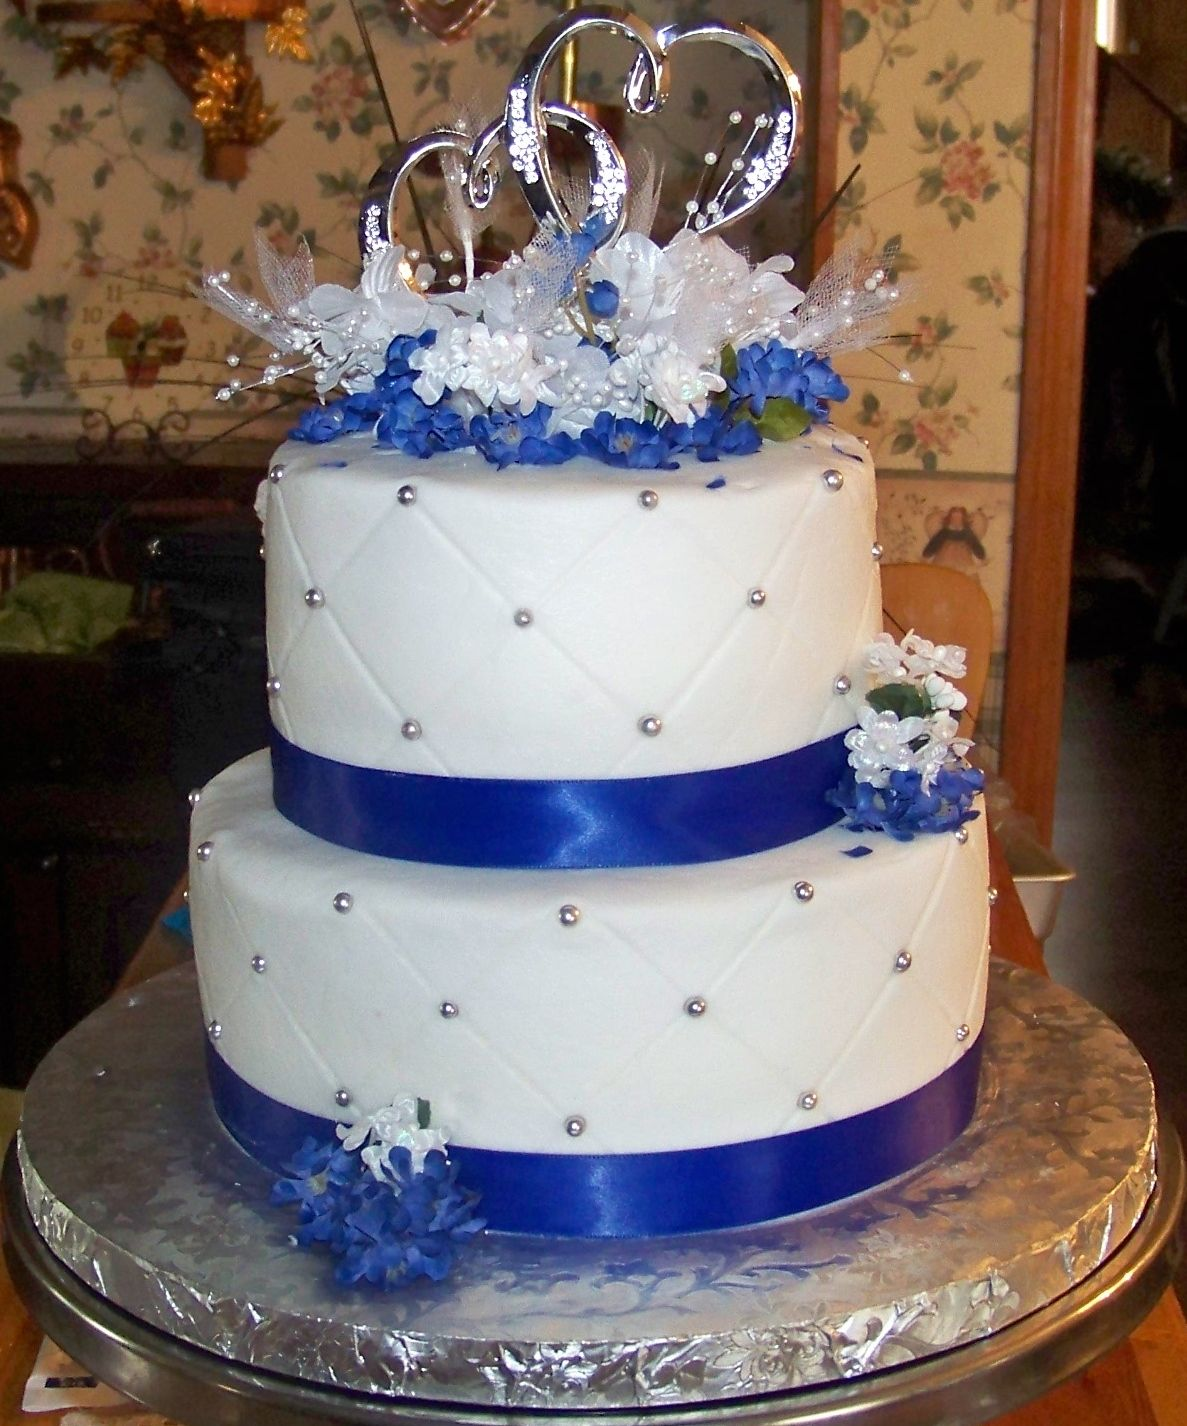 Wedding Cake Ideas Royal Blue: 40th. Anniversary Cake Done In Royal Blue., There Wedding